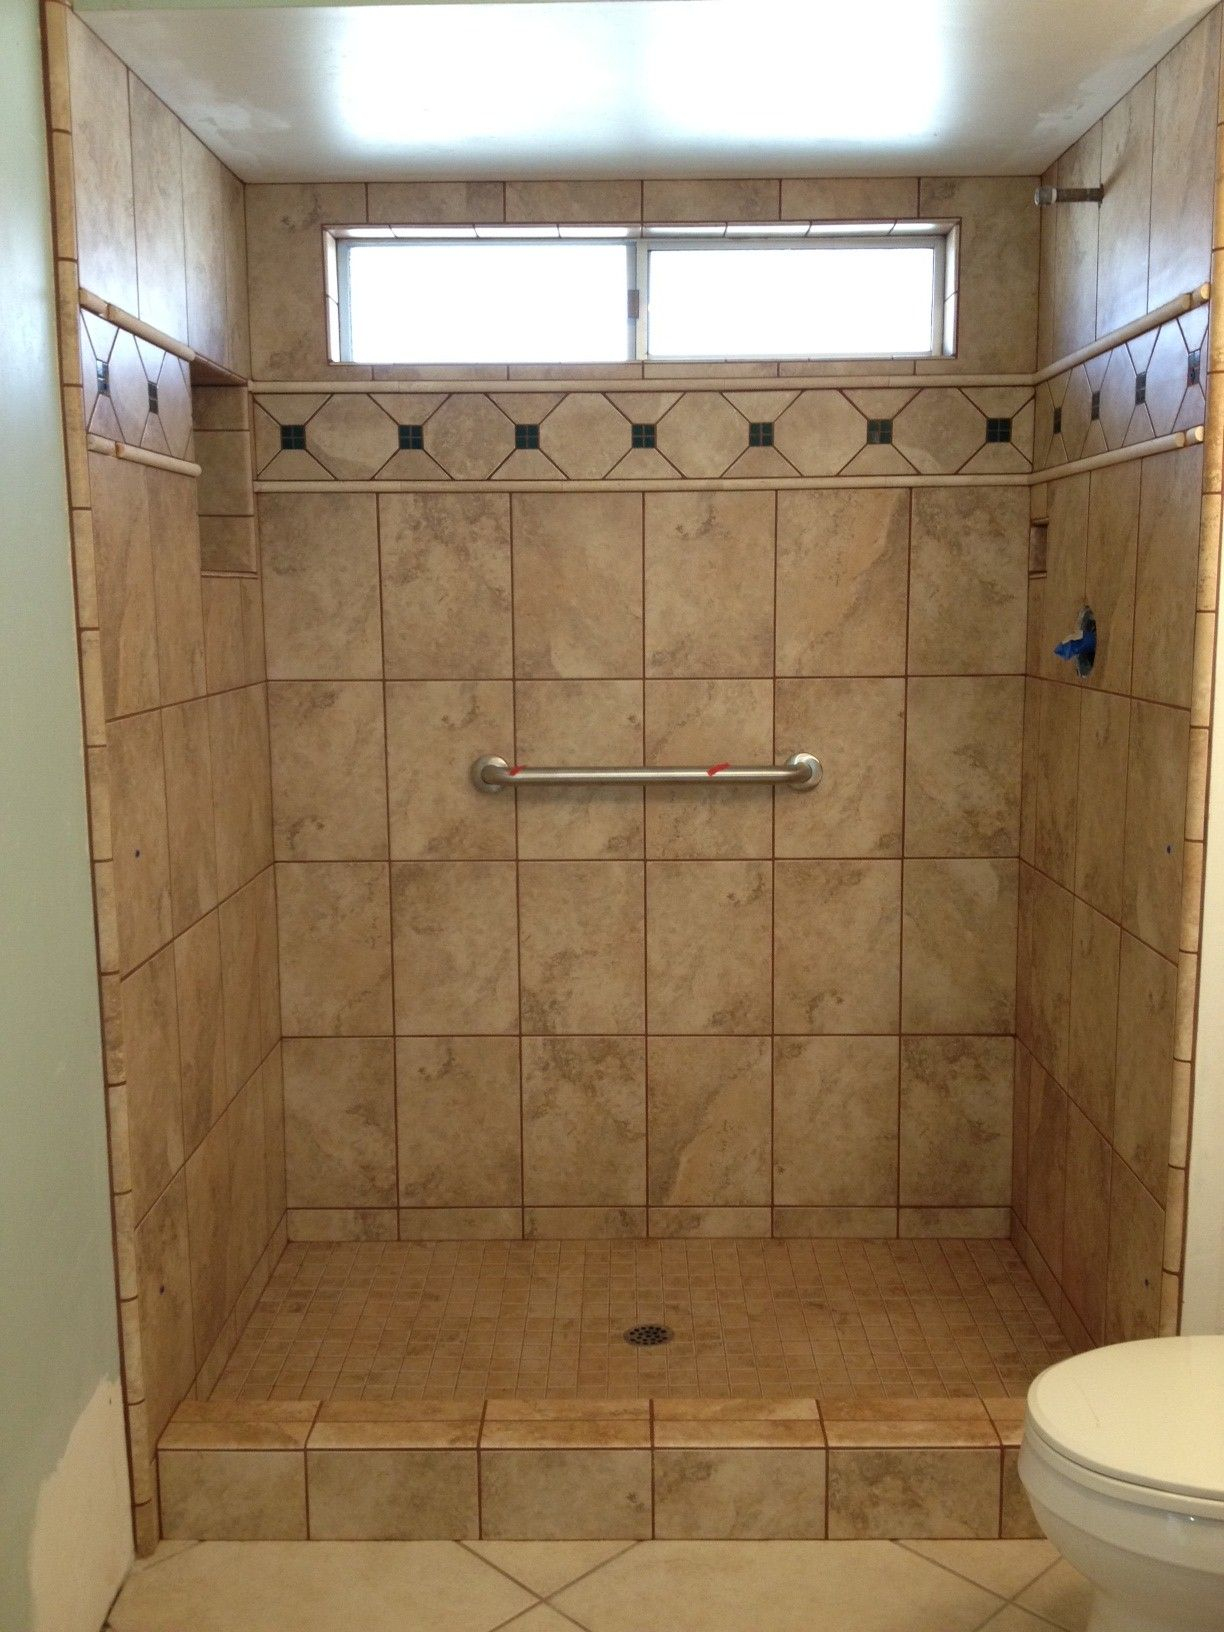 Photos Of Tiled Shower Stalls Photos Gallery Custom Tile Work Co Ceramic